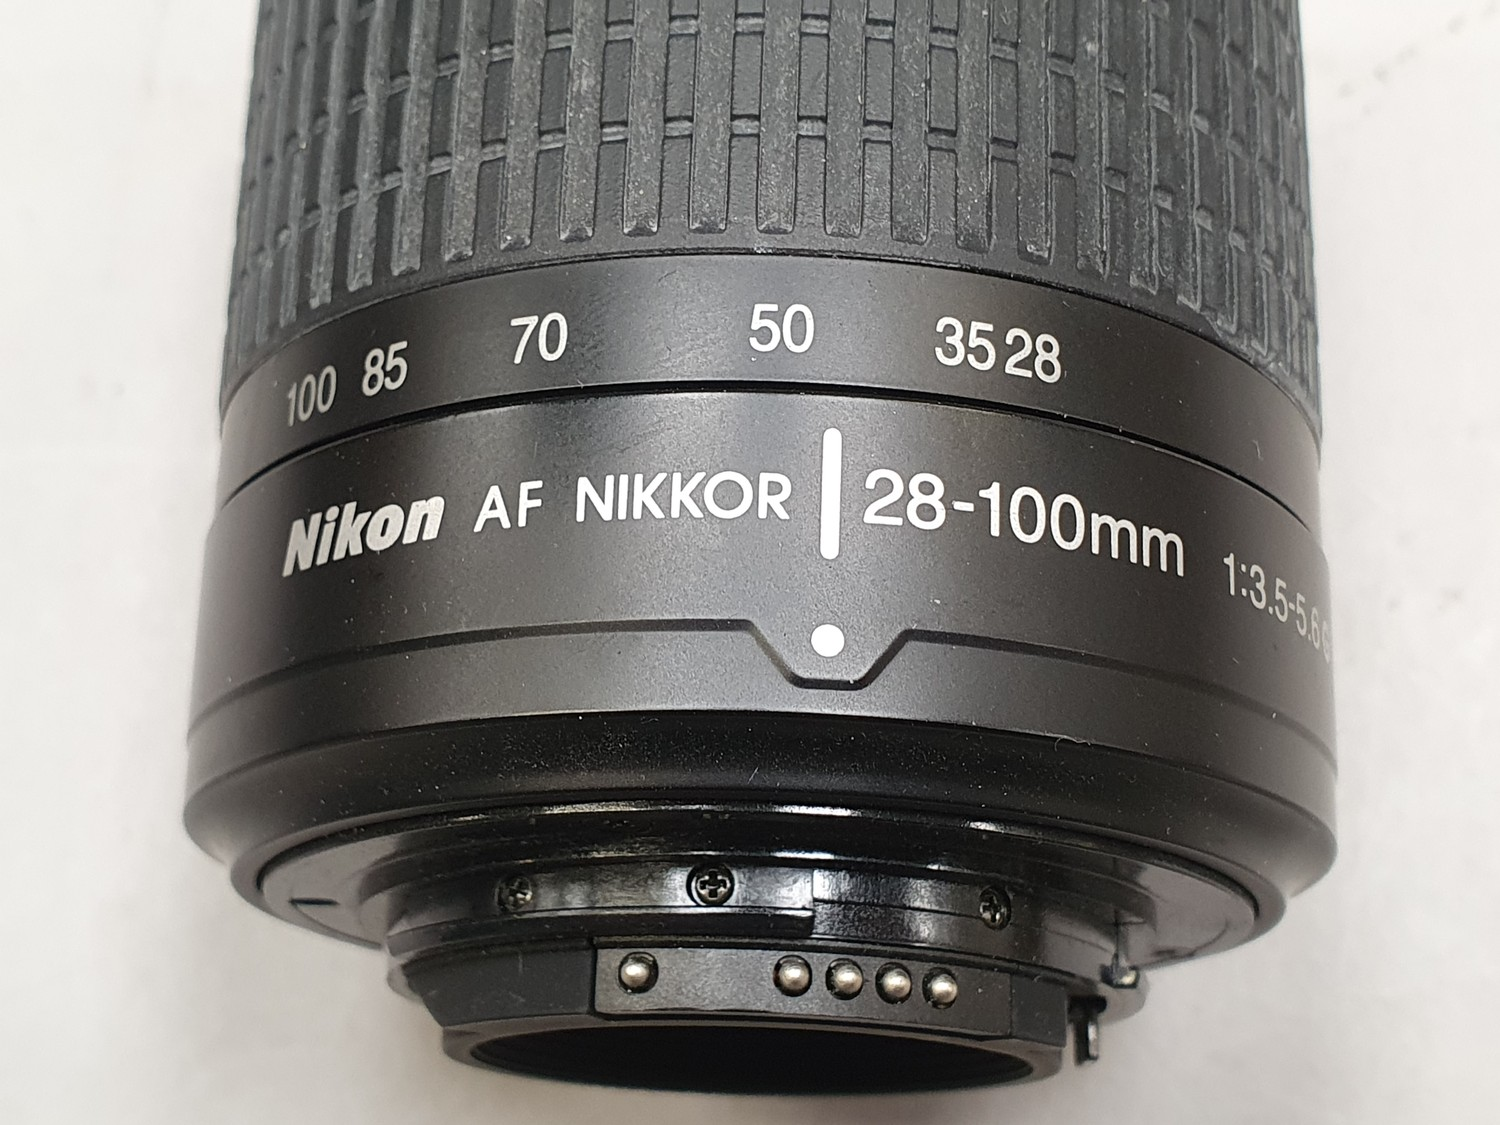 A collection of camera lenses to include Optomax, Nikon etc. - Image 5 of 9